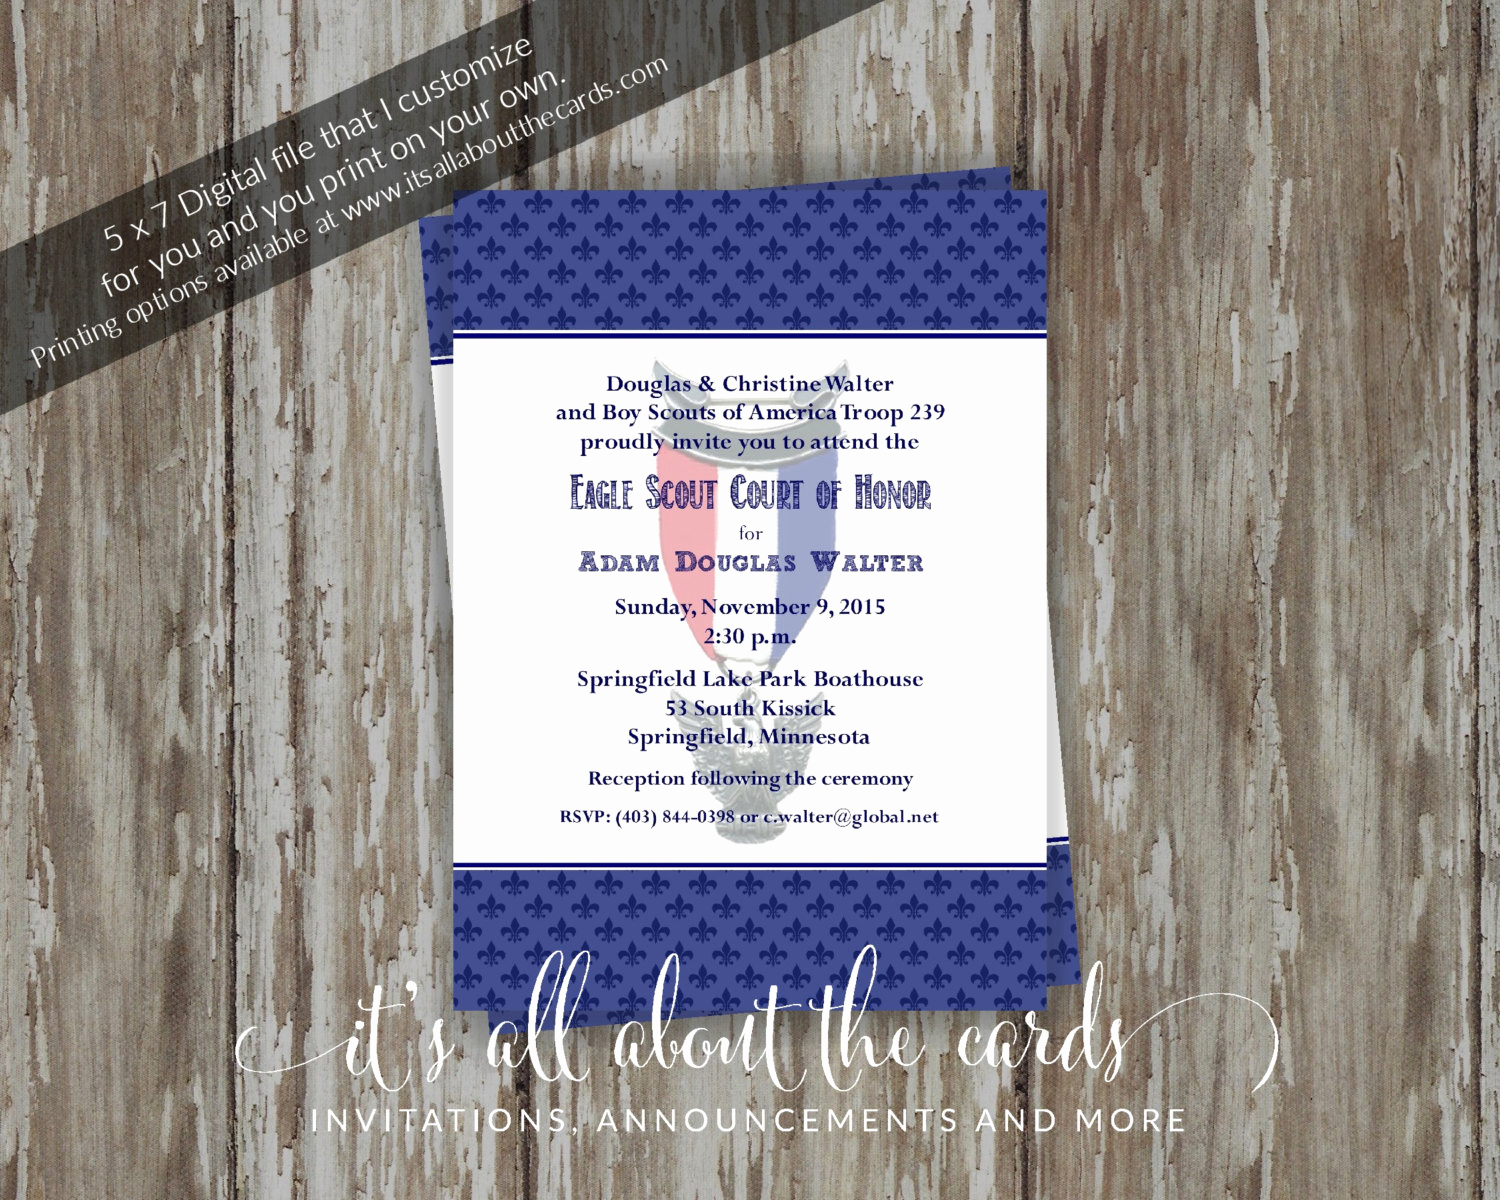 Eagle Scout Invitation Wording Elegant Eagle Scout Court Of Honor Invitations Proud White